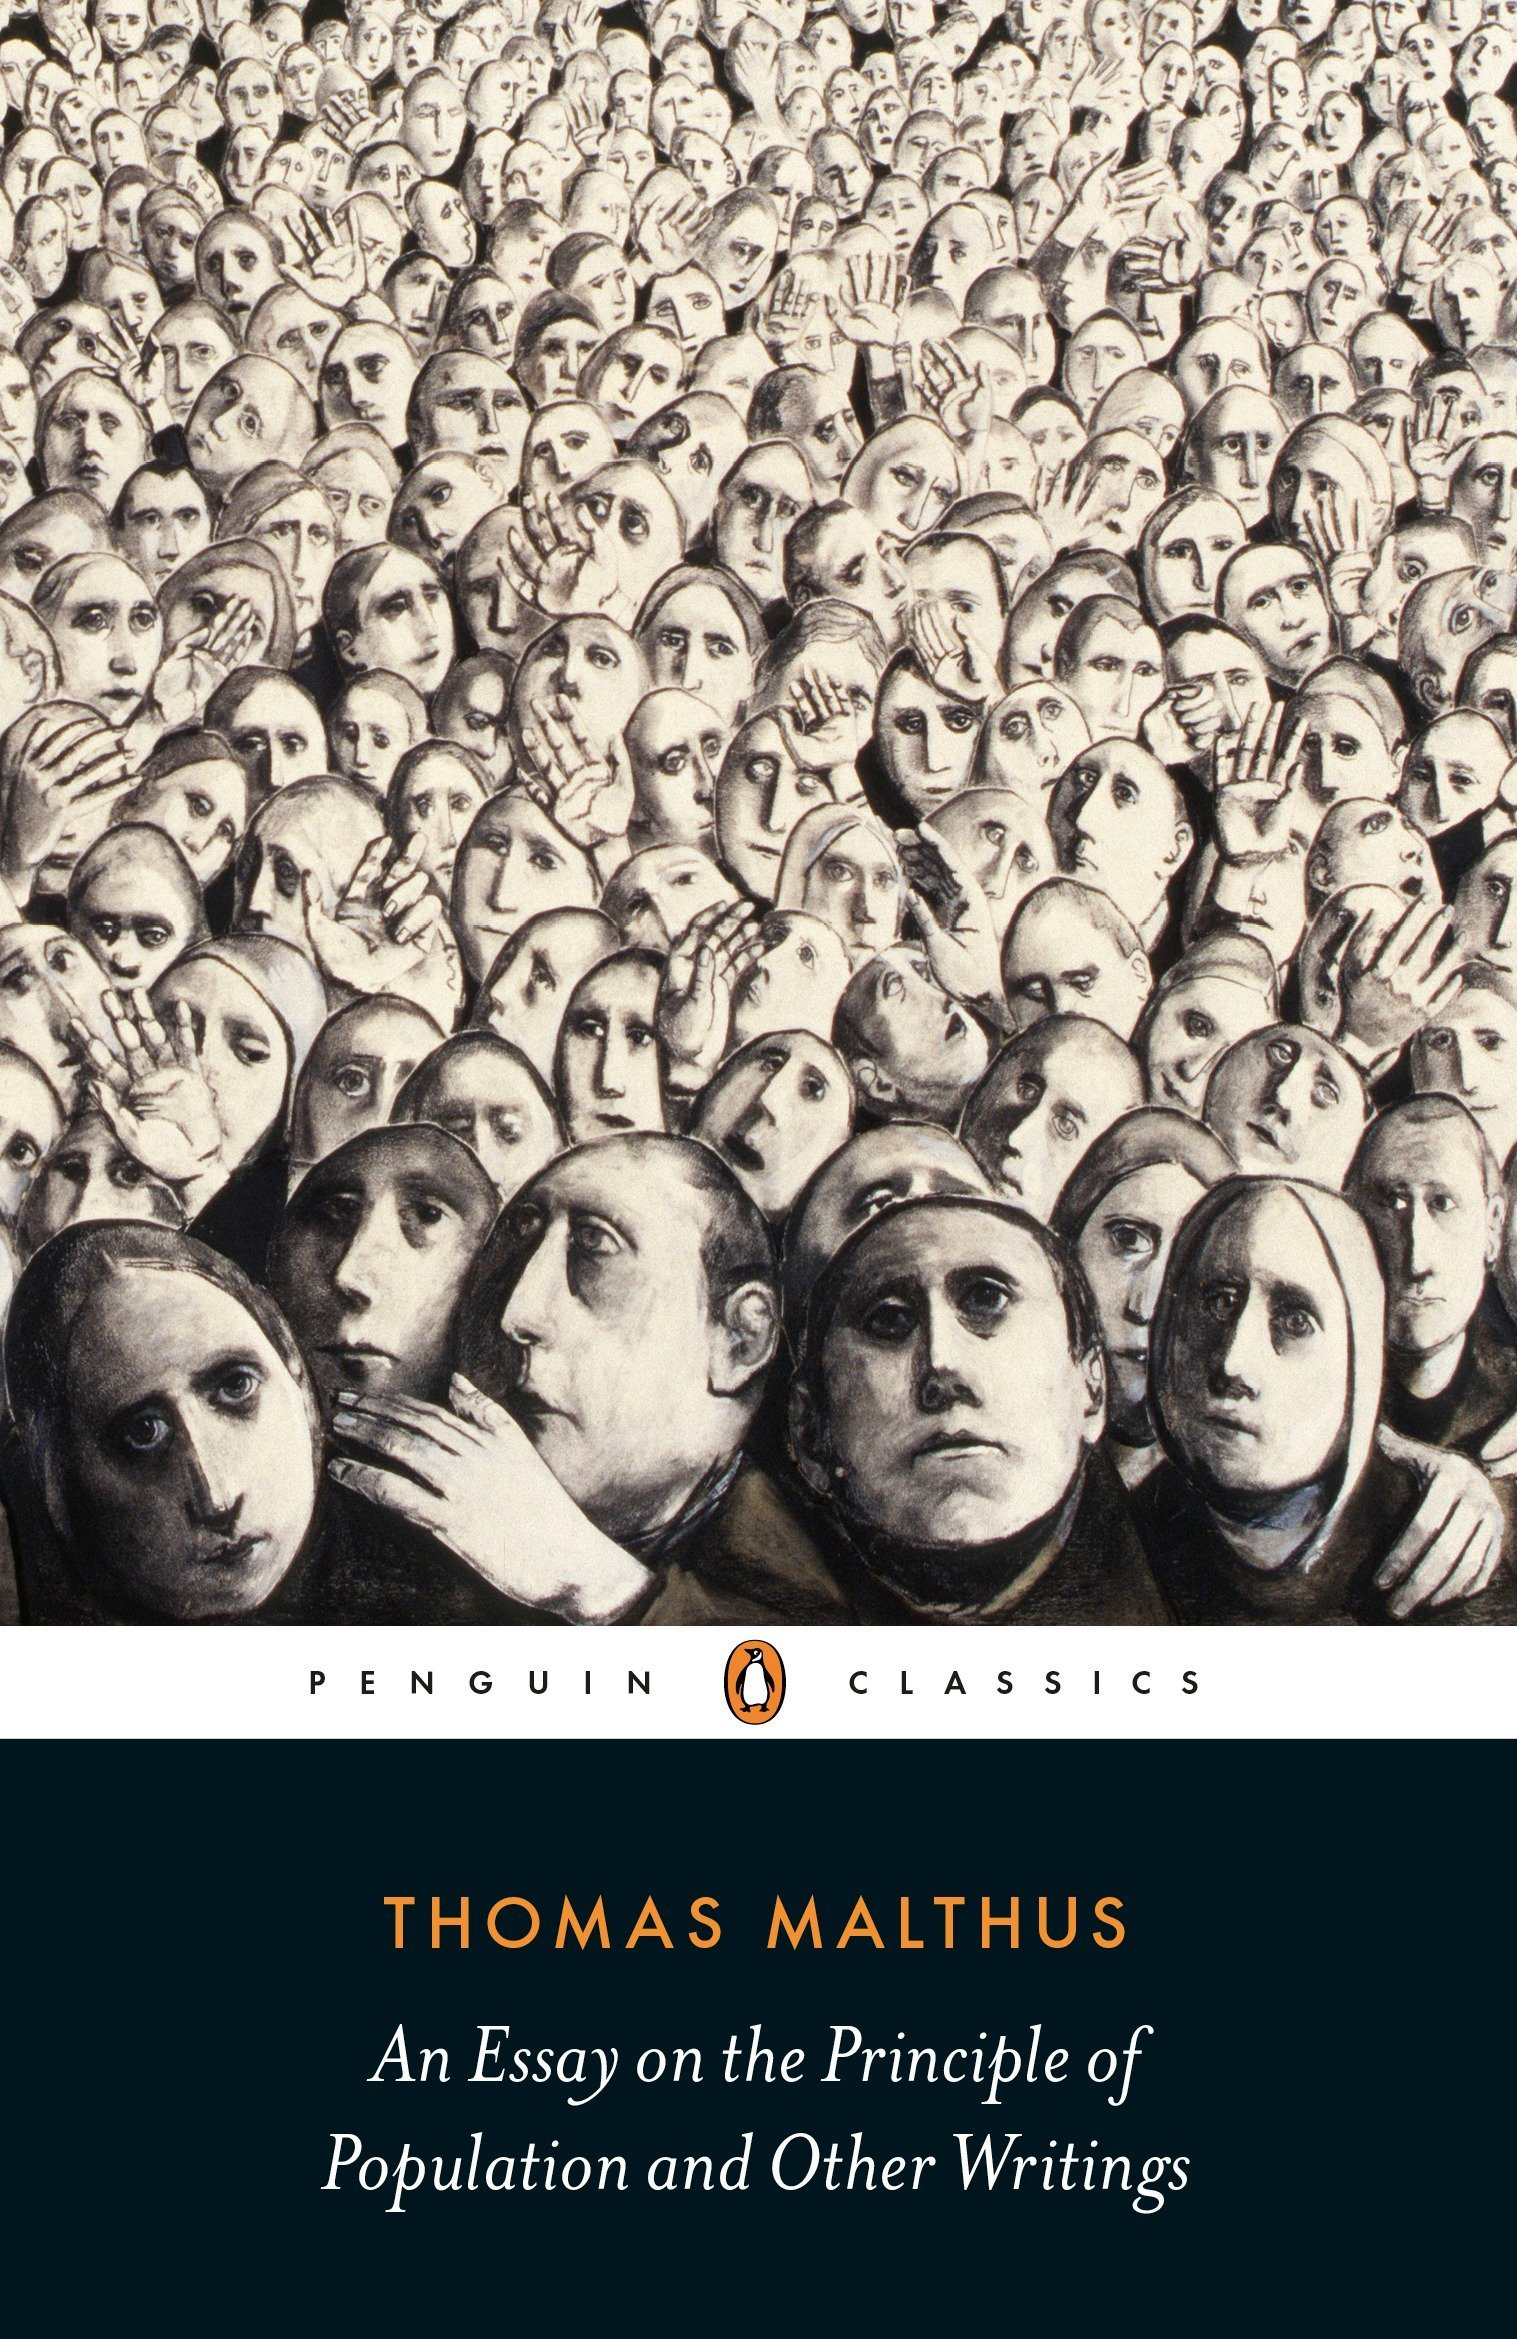 An Essay on the Principle of Population and Other Writings (Penguin Classics)